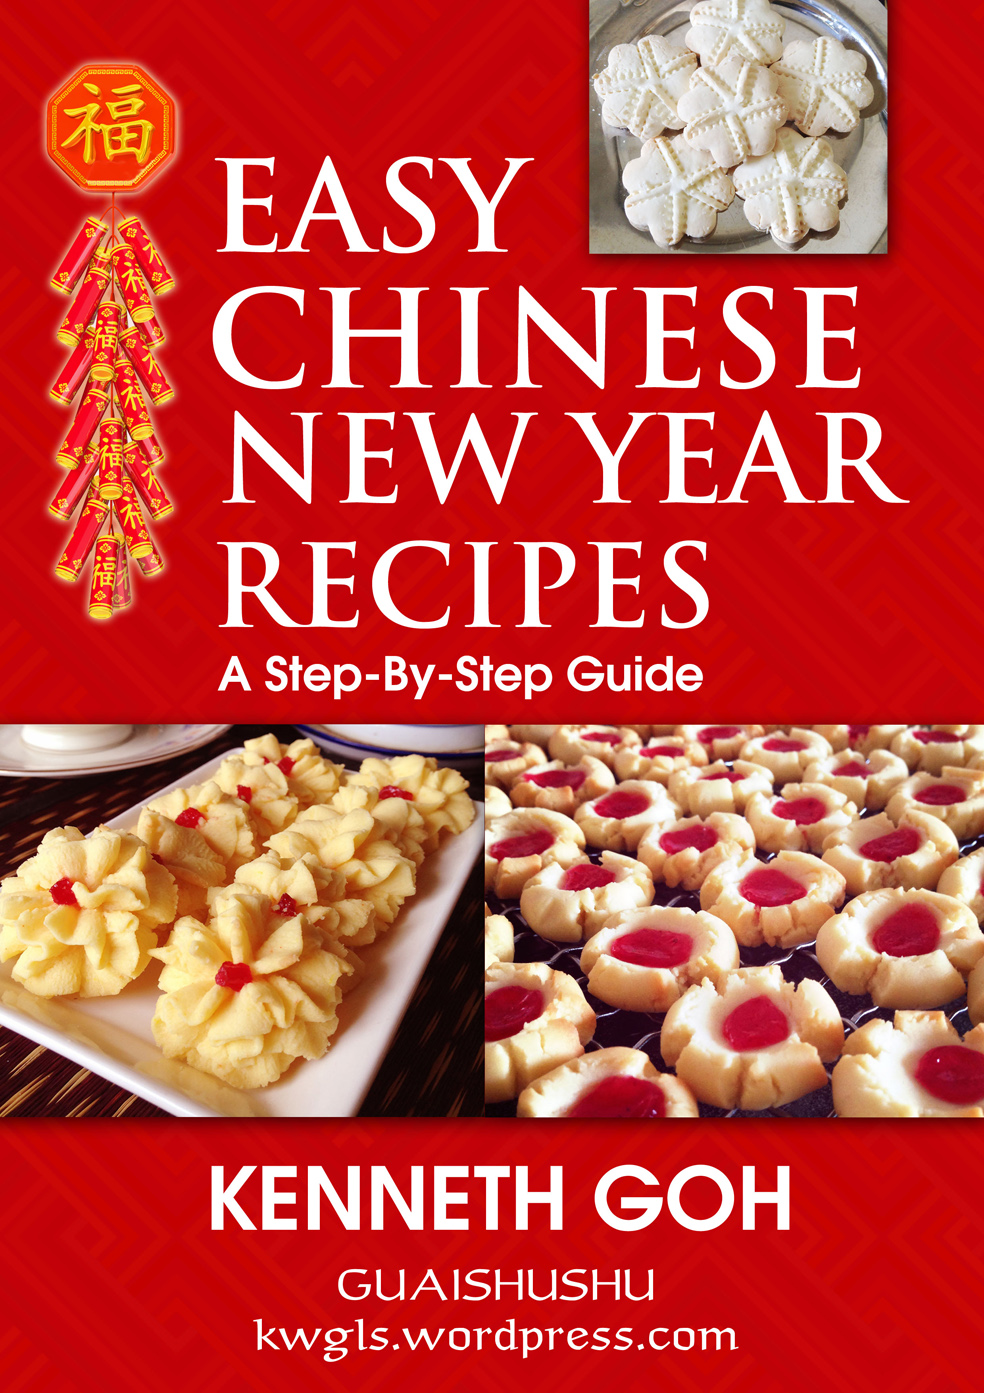 Easy Chinese New Year Recipe - Step by Step Guide - Payhip